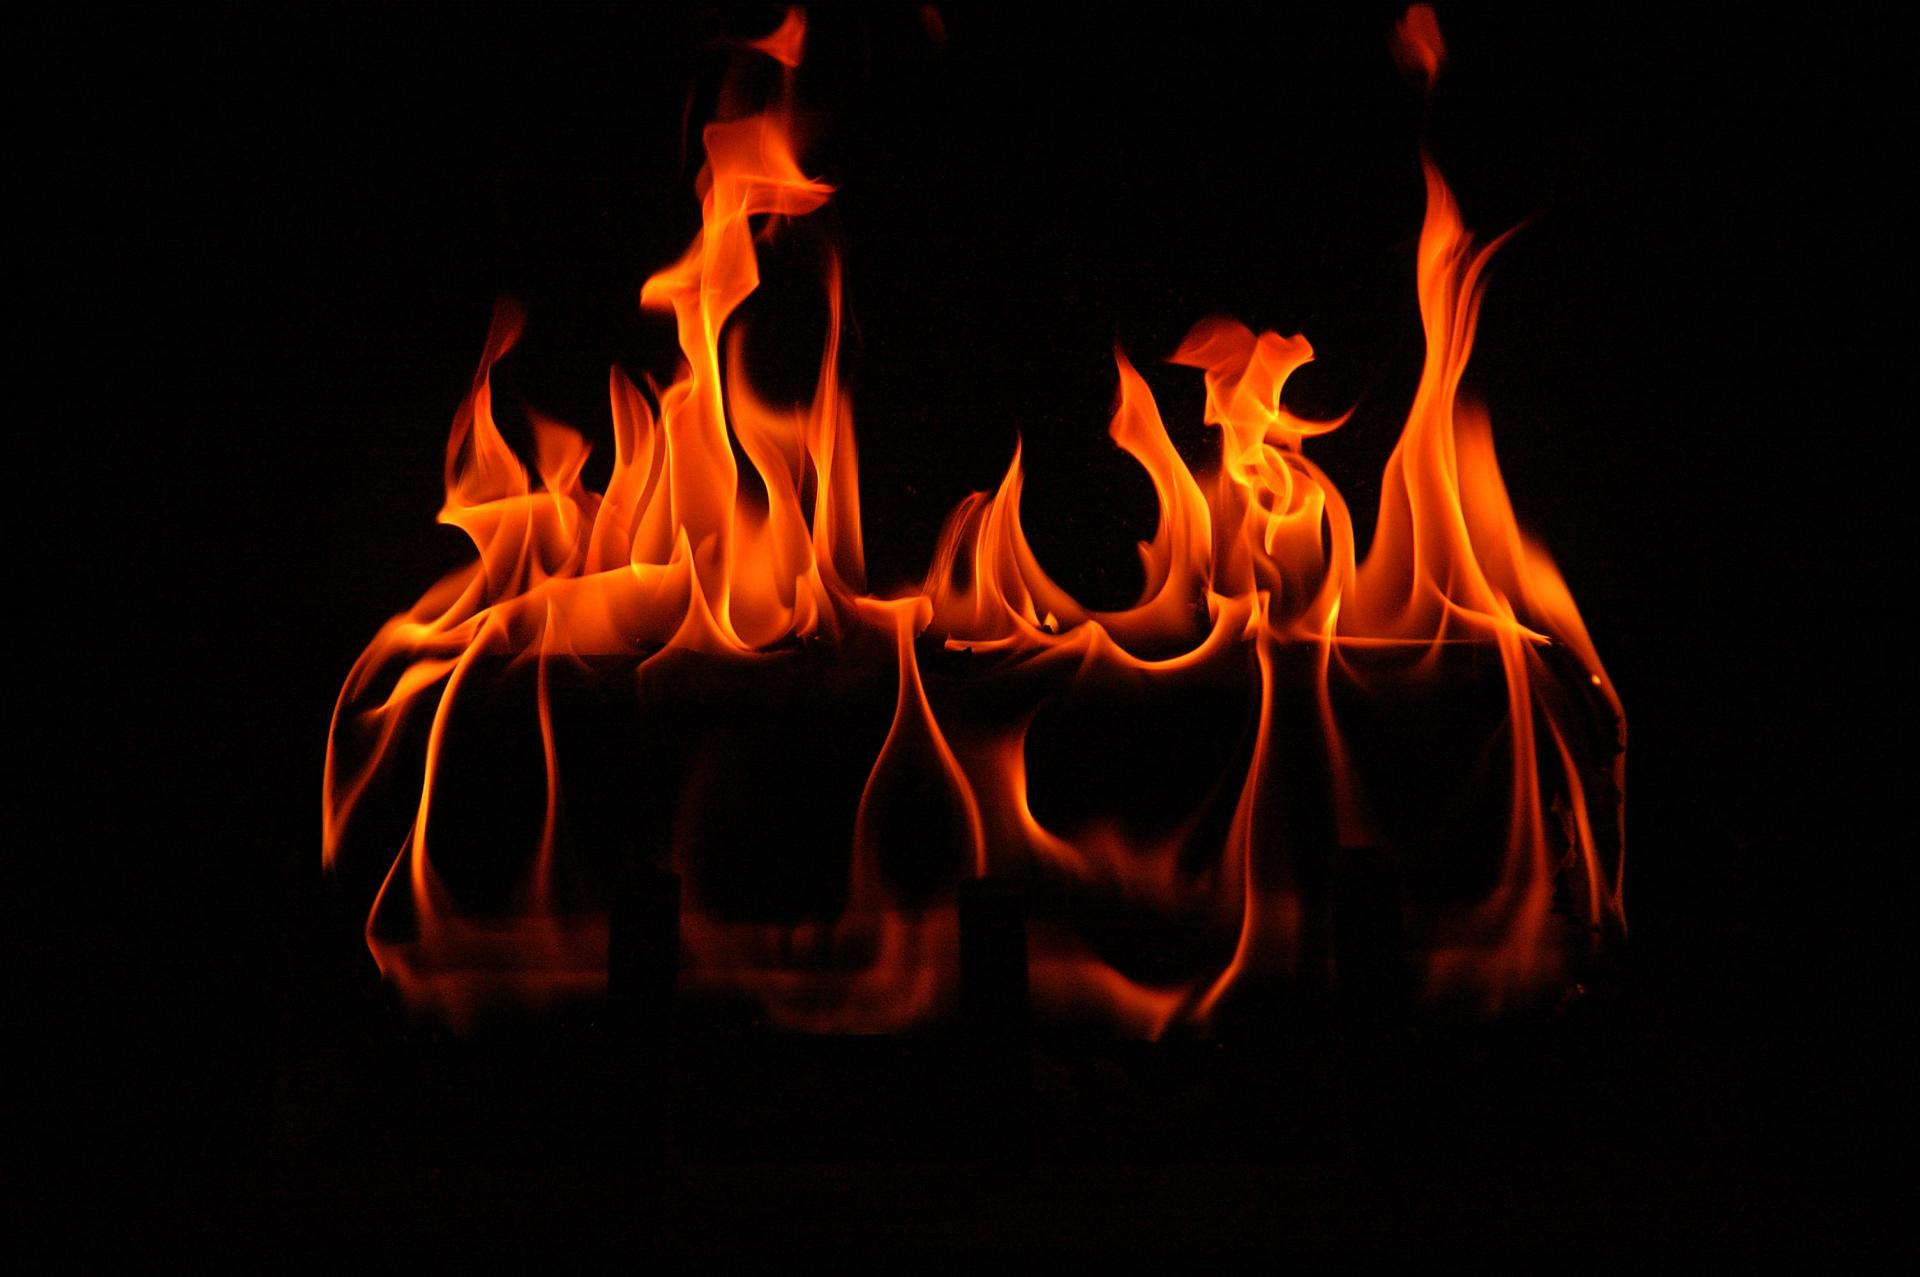 Fire Photography wallpapers HD quality